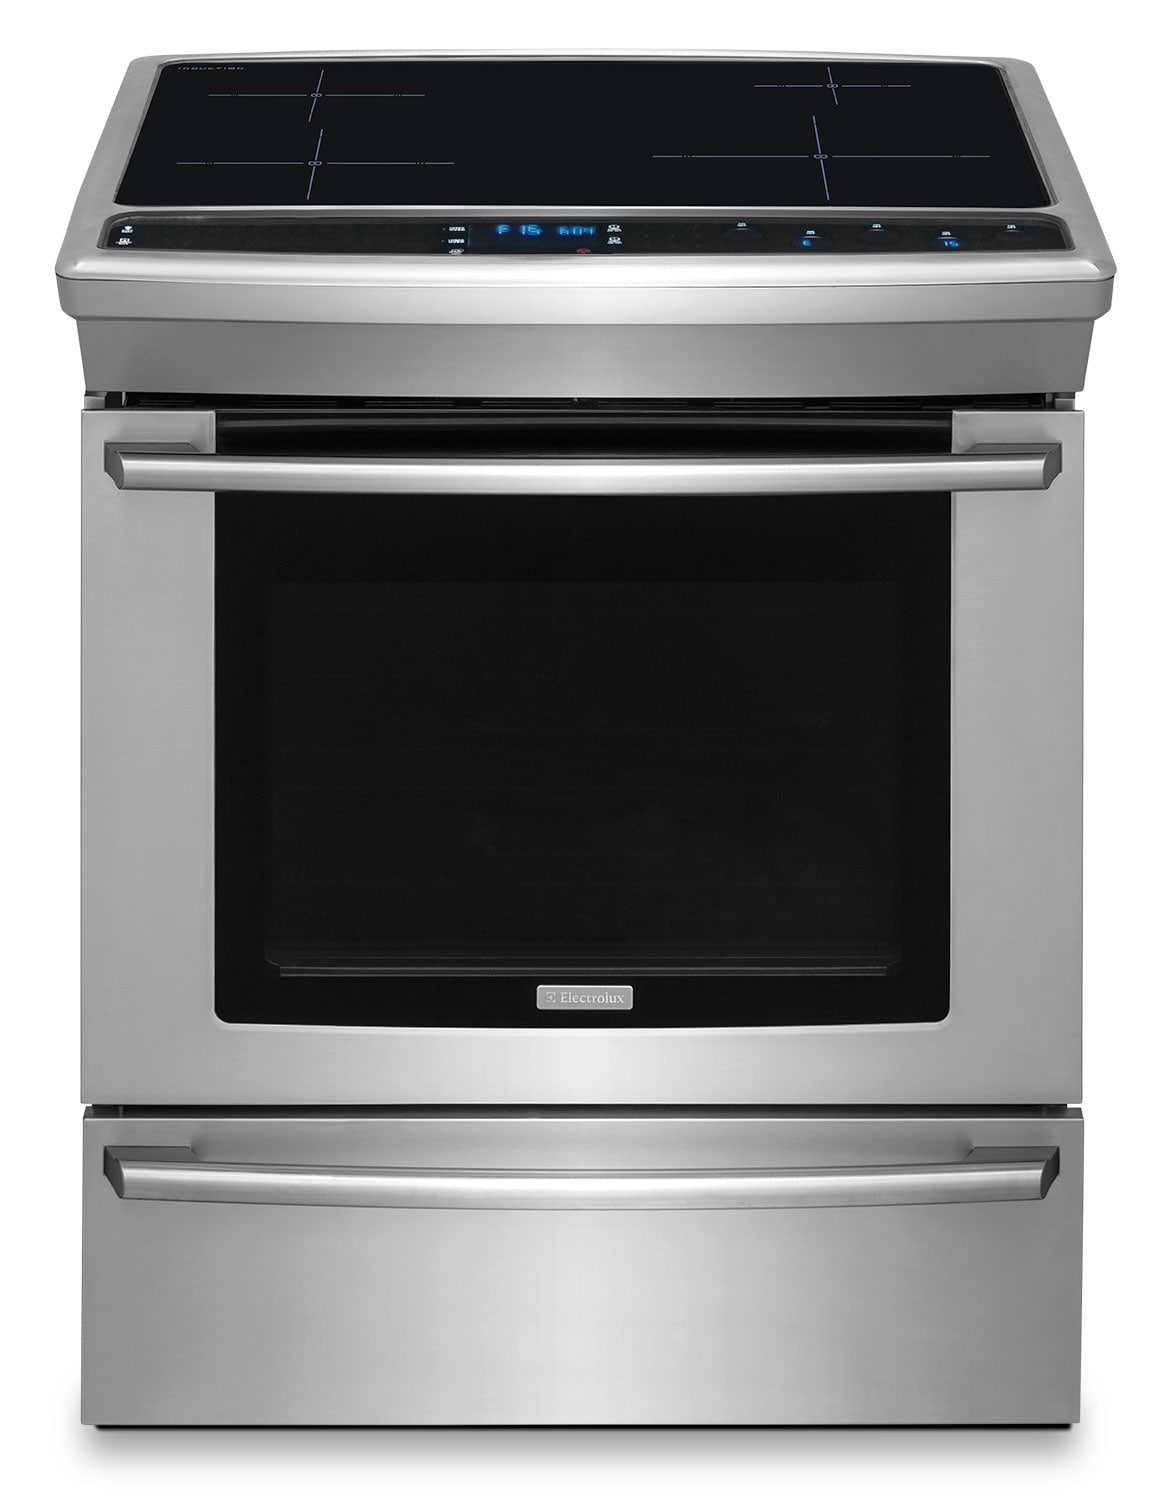 The Electrolux EW30IS8C Range Collection